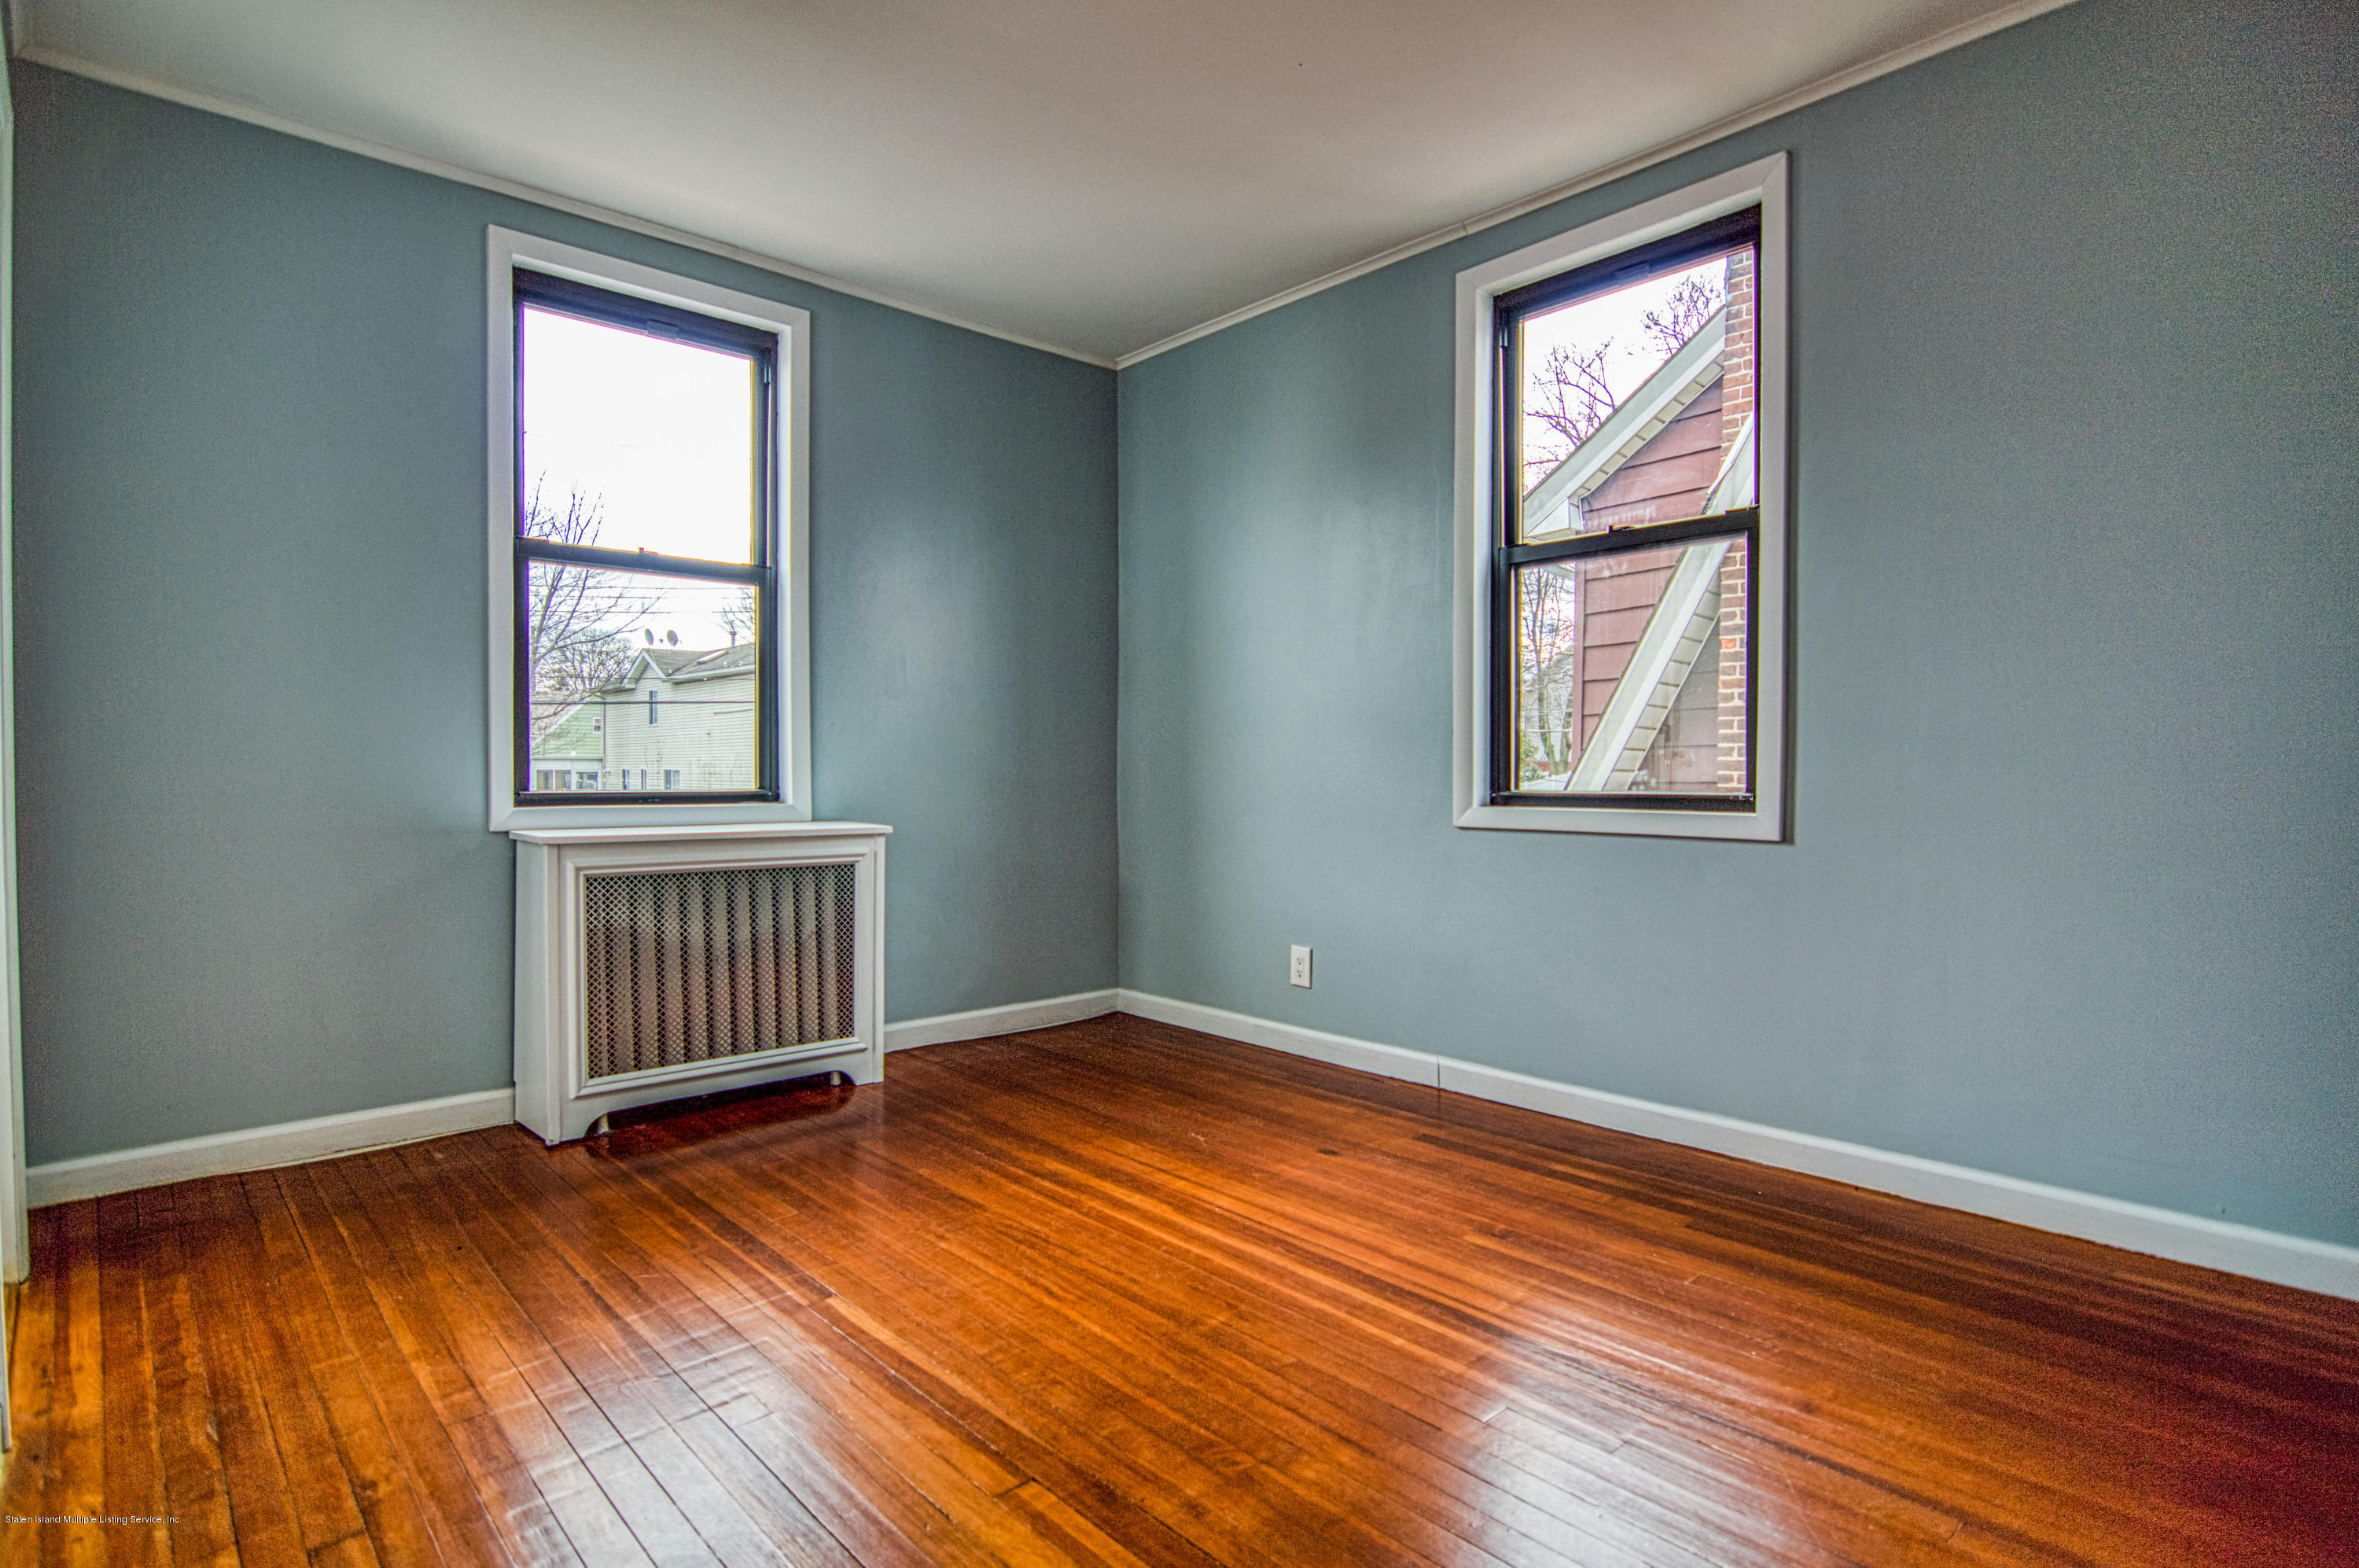 Single Family - Detached 54 Quinlan Avenue  Staten Island, NY 10314, MLS-1135997-12